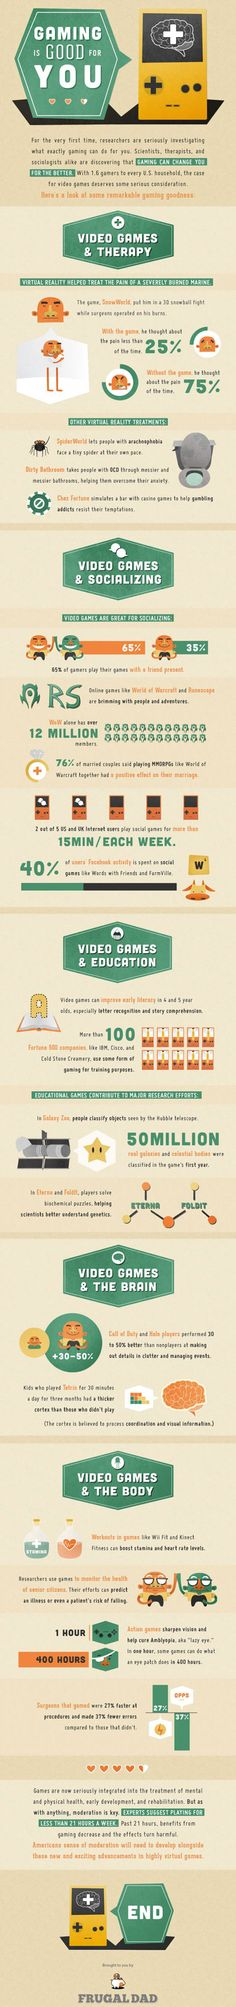 Gaming Is Good For You | MakeUseOf Geeky Fun